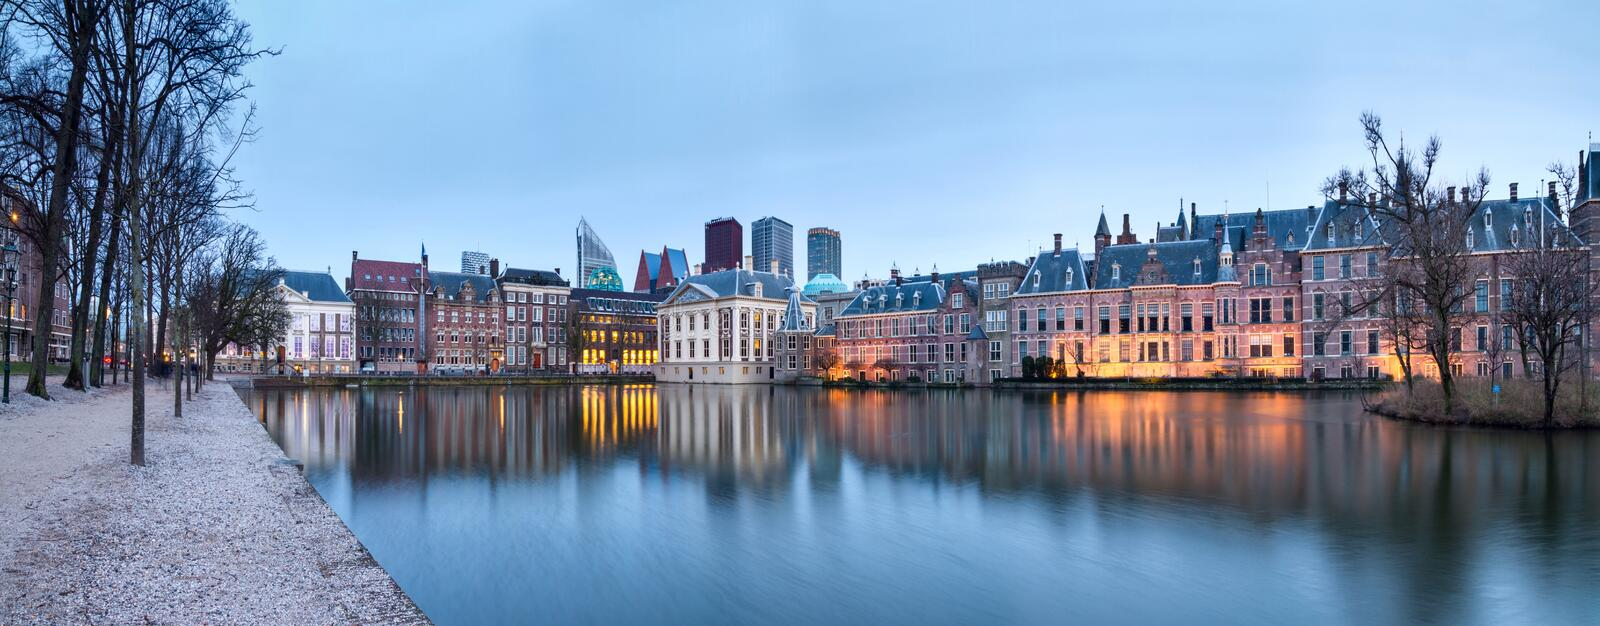 City Landscape, sunset panorama - view on pond Hofvijver and complex of buildings Binnenhof in from the city centre of The Hague stock image